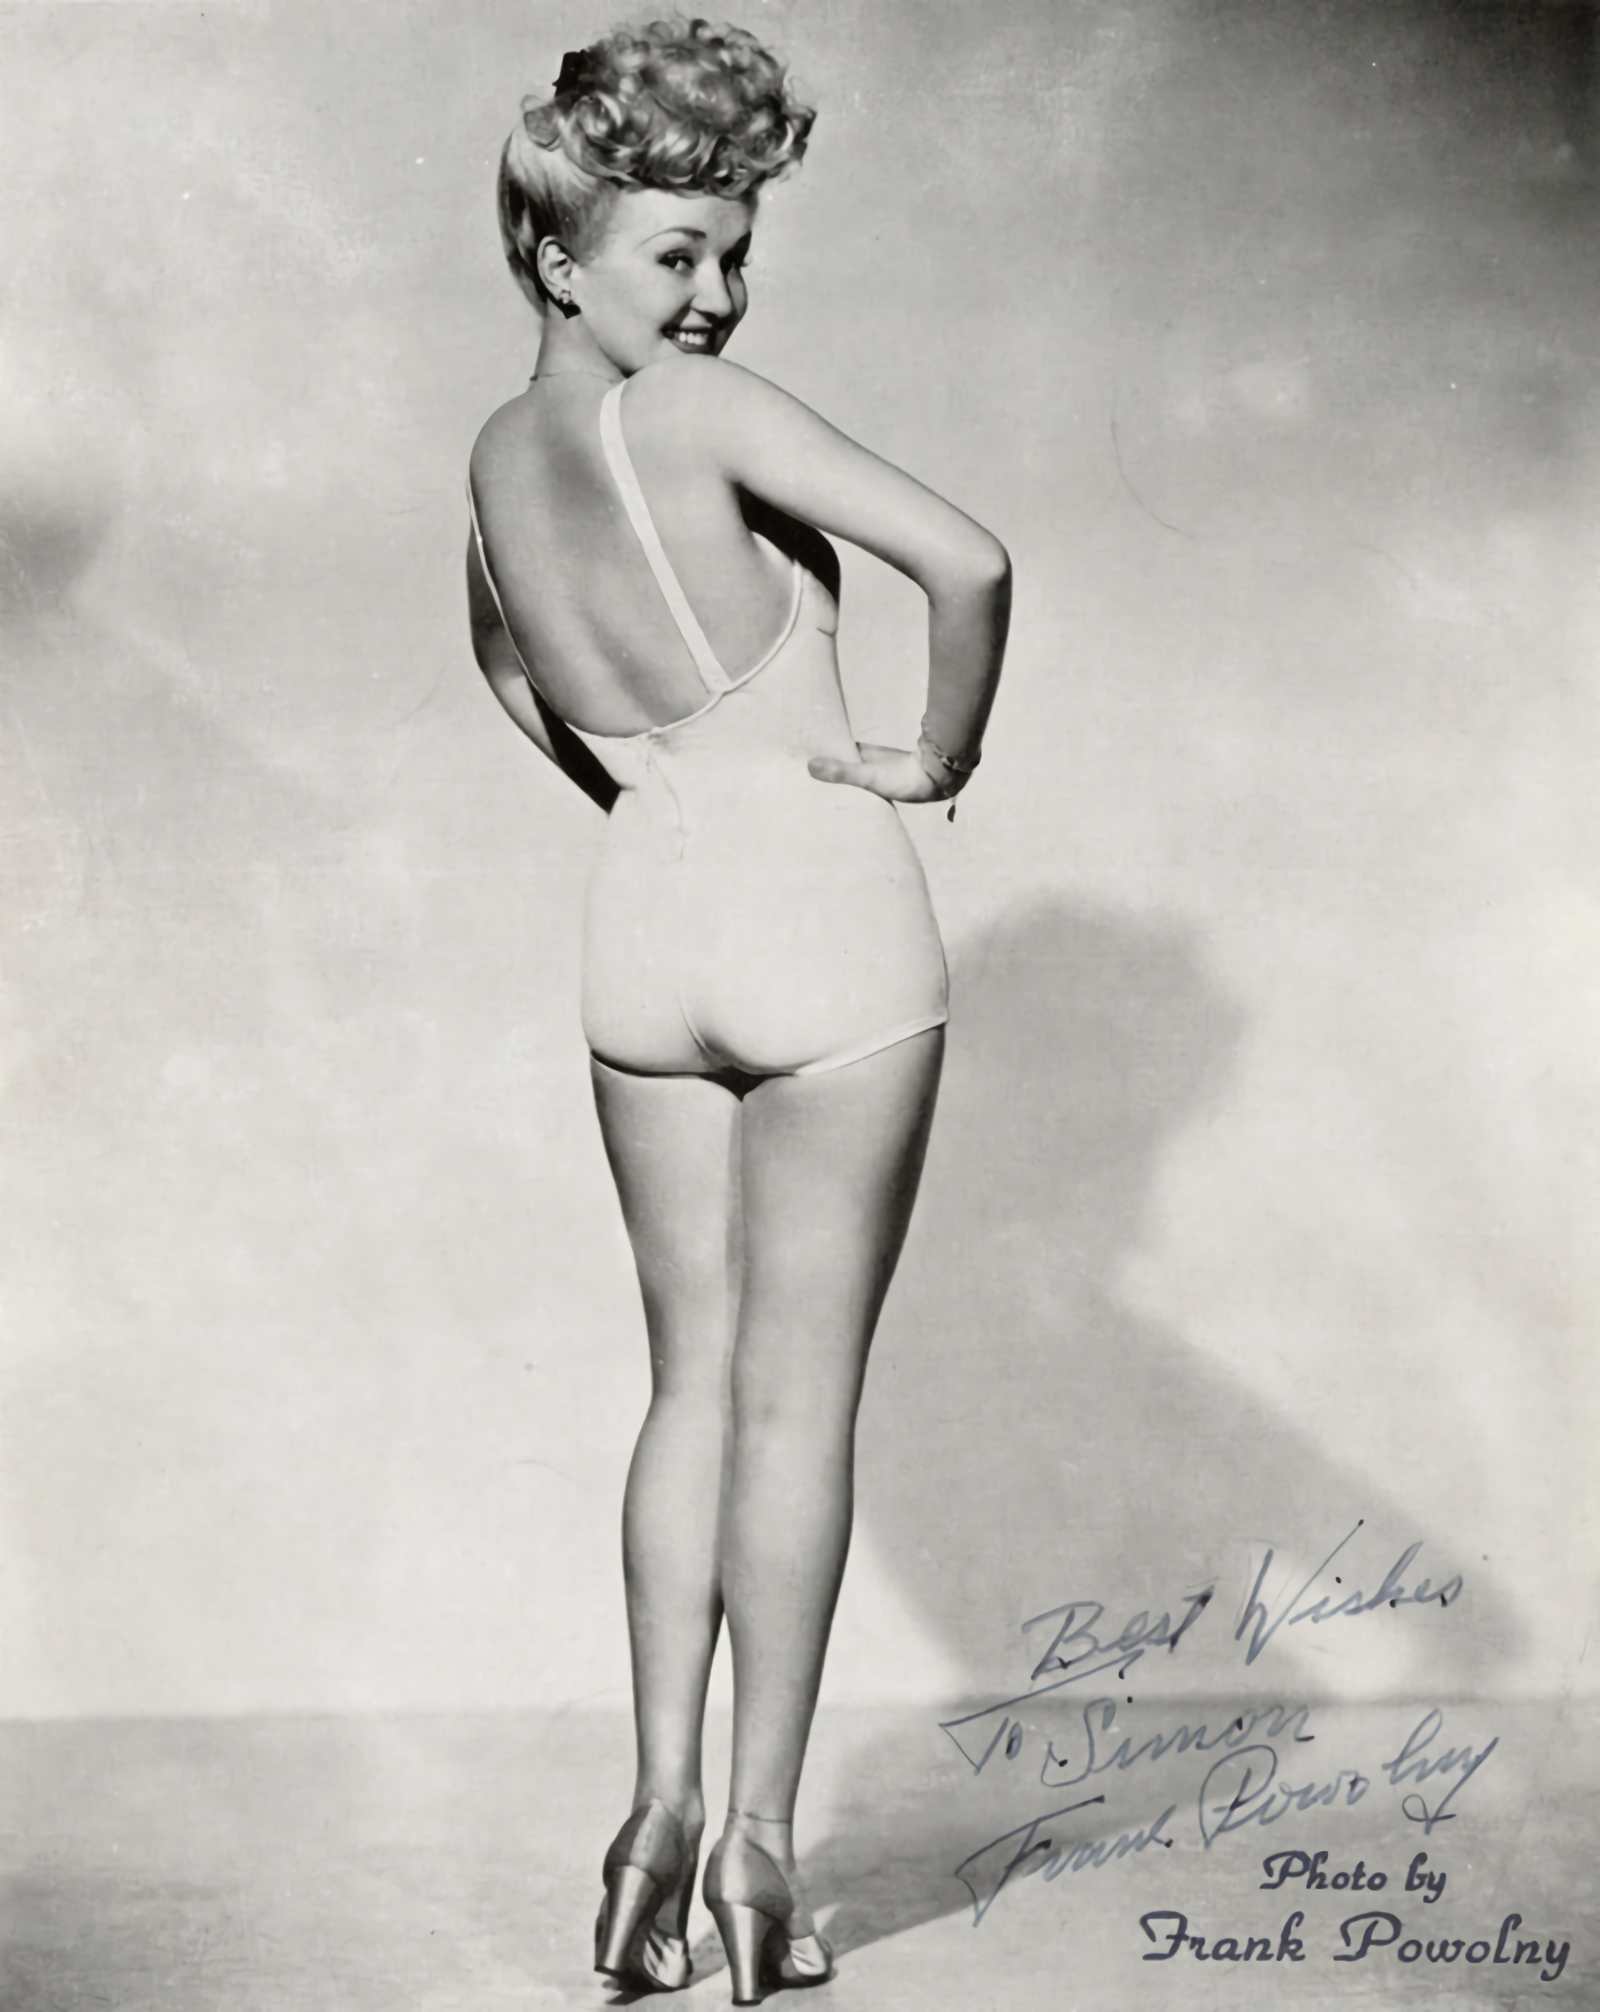 Betty Grable's famous Pin-up photograph